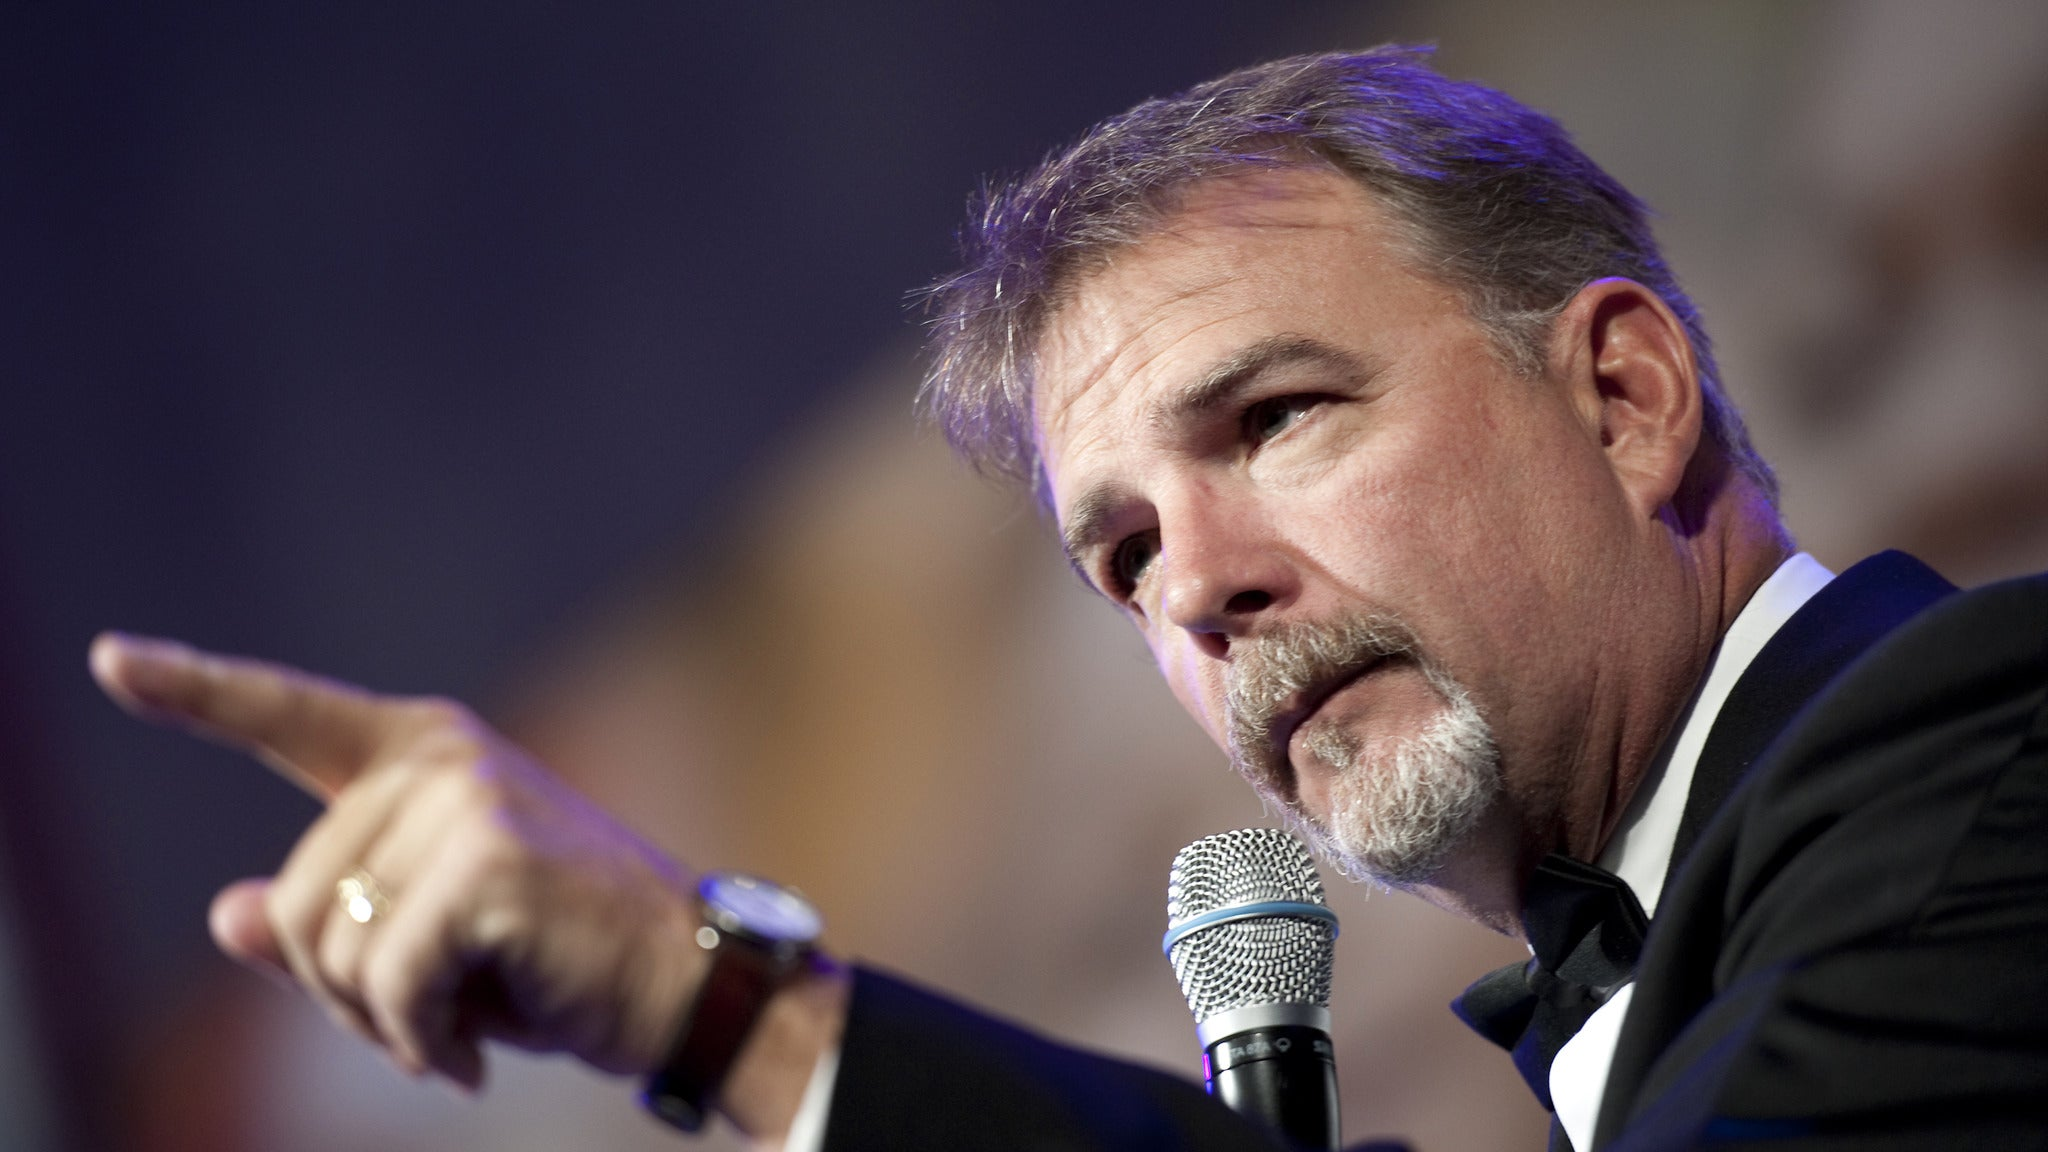 Bill Engvall at The Event Center at Hollywood Casino